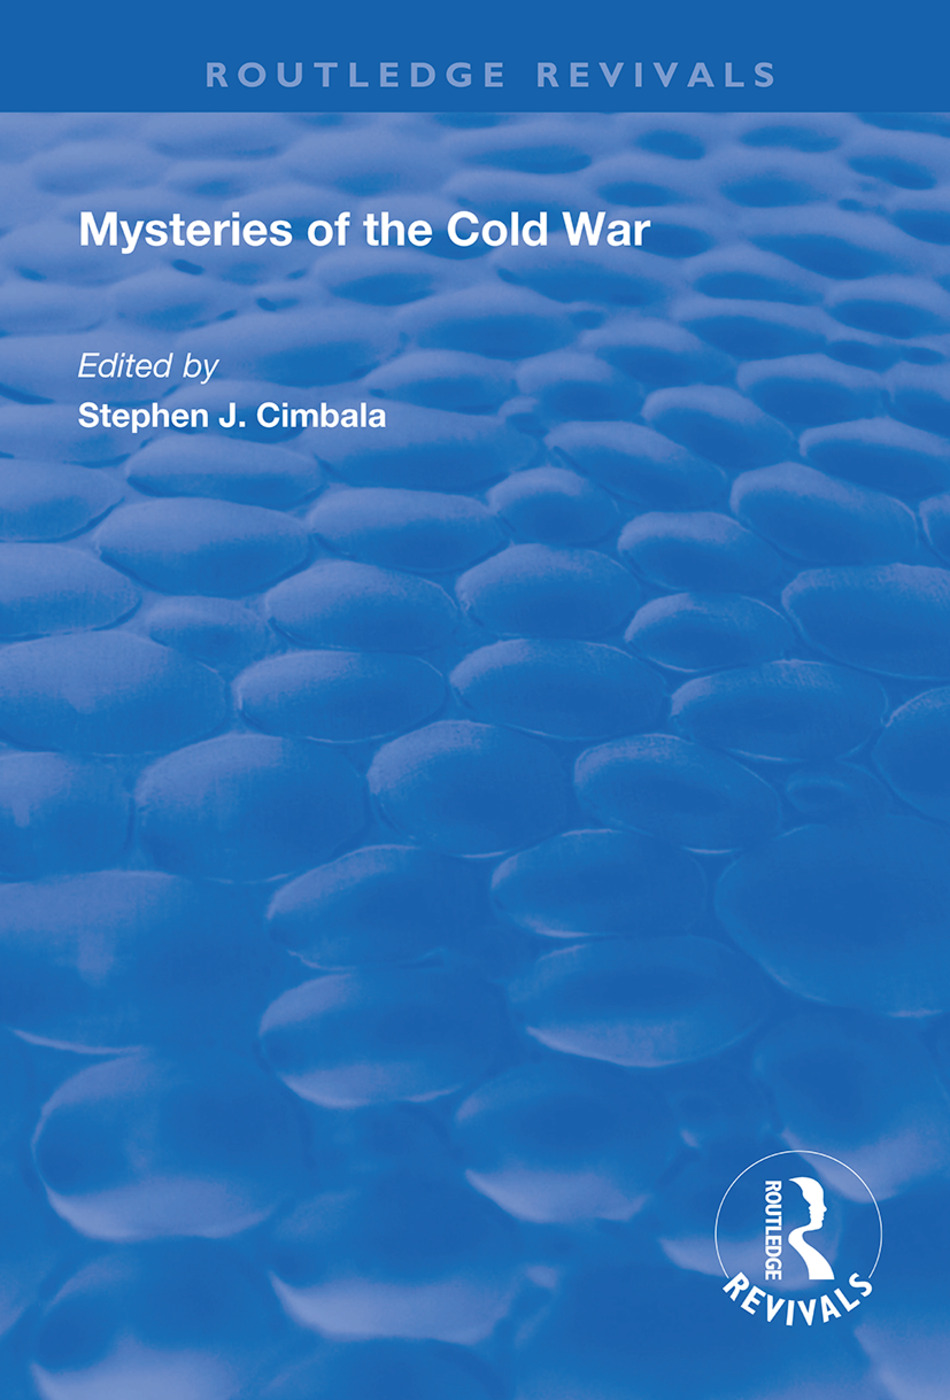 Mysteries of the Cold War